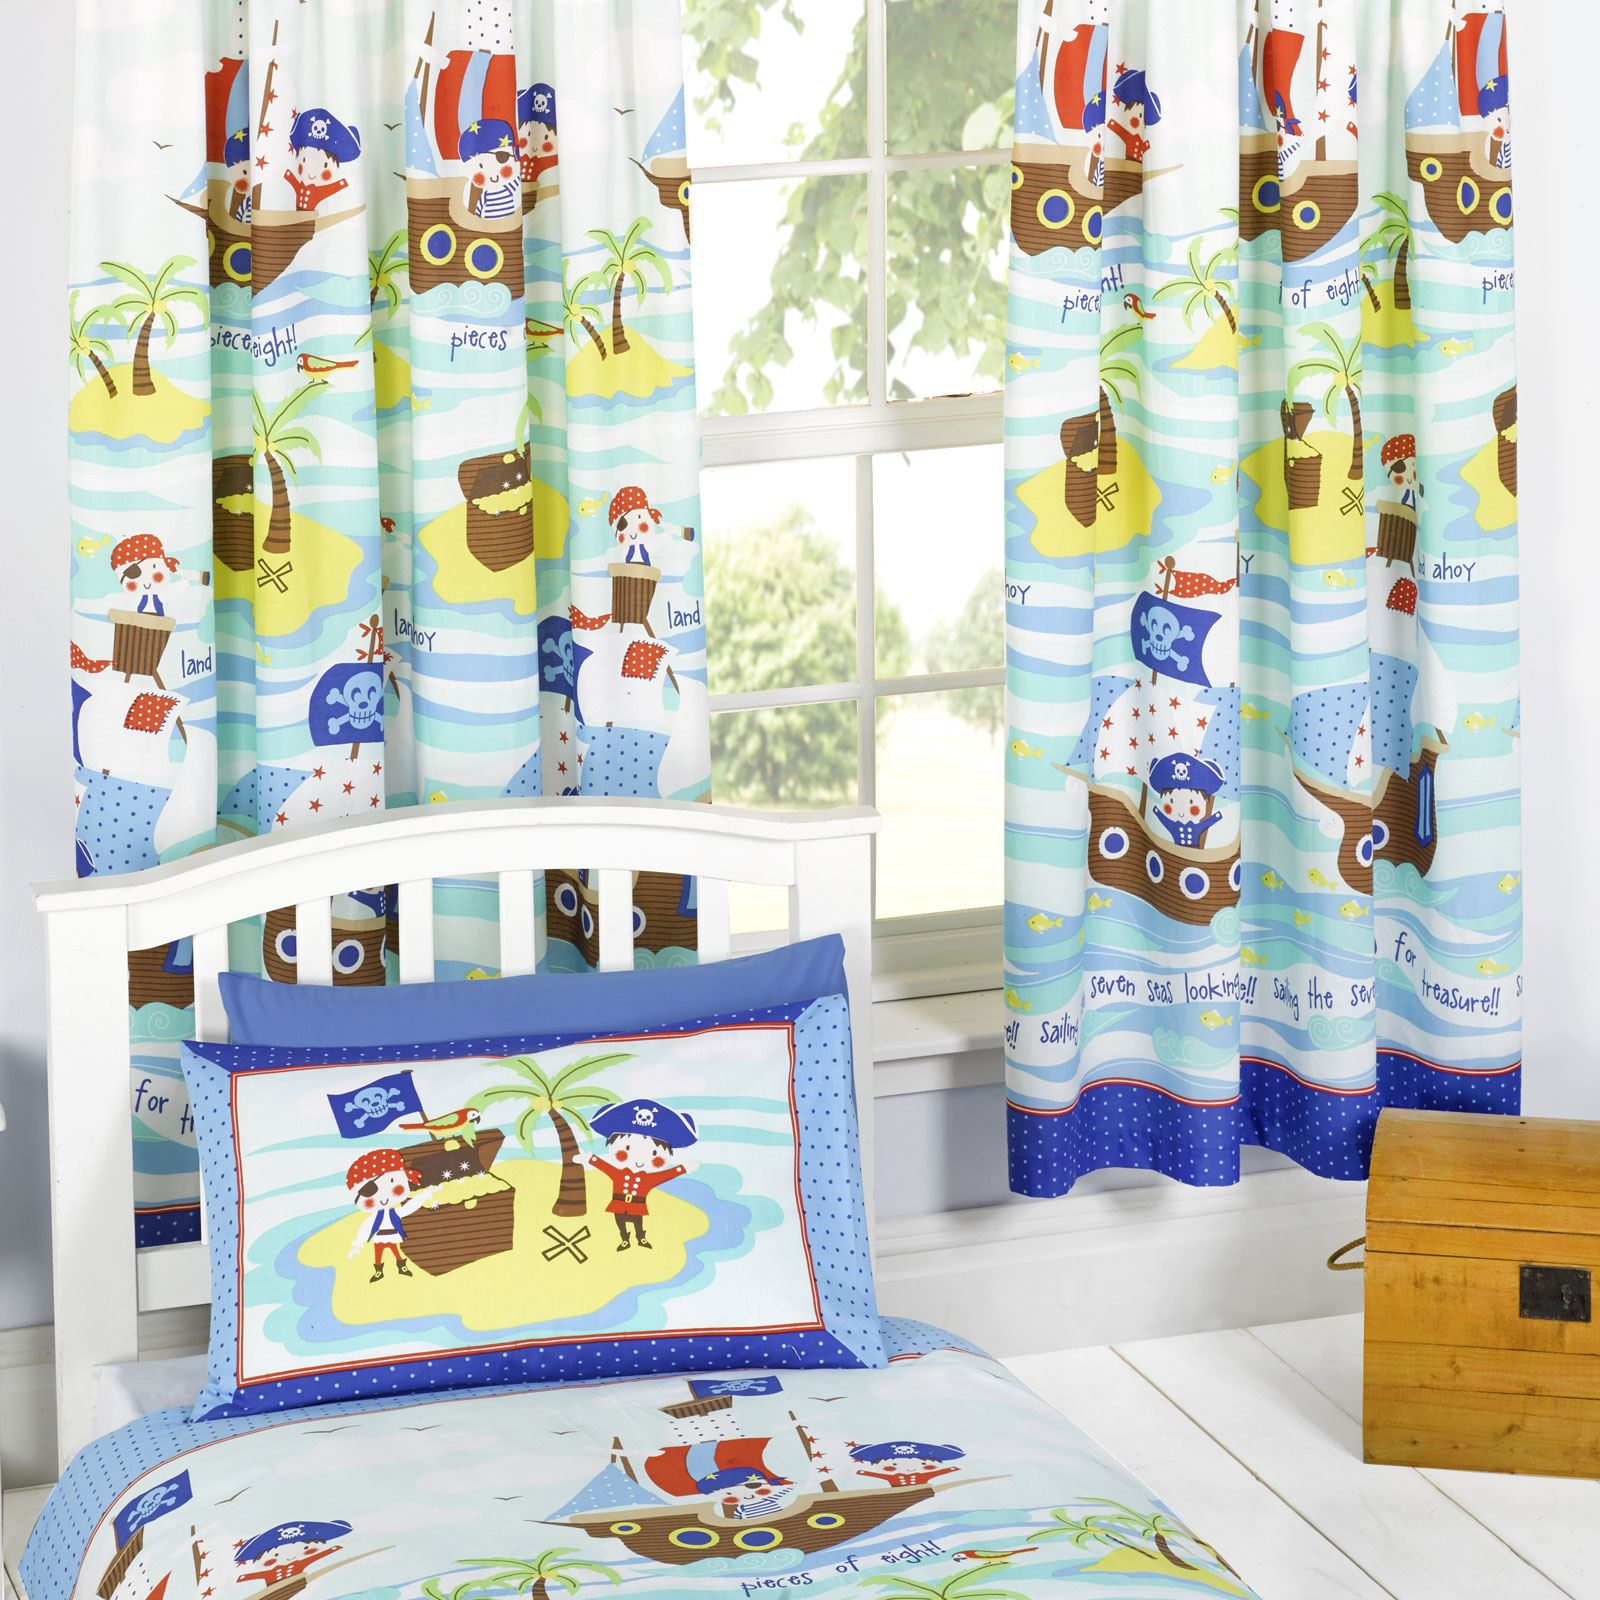 SEVEN SEAS PIRATES BEDDING + BEDROOM ACCESSORIES DUVET COVERS CURTAINS AND  MORE